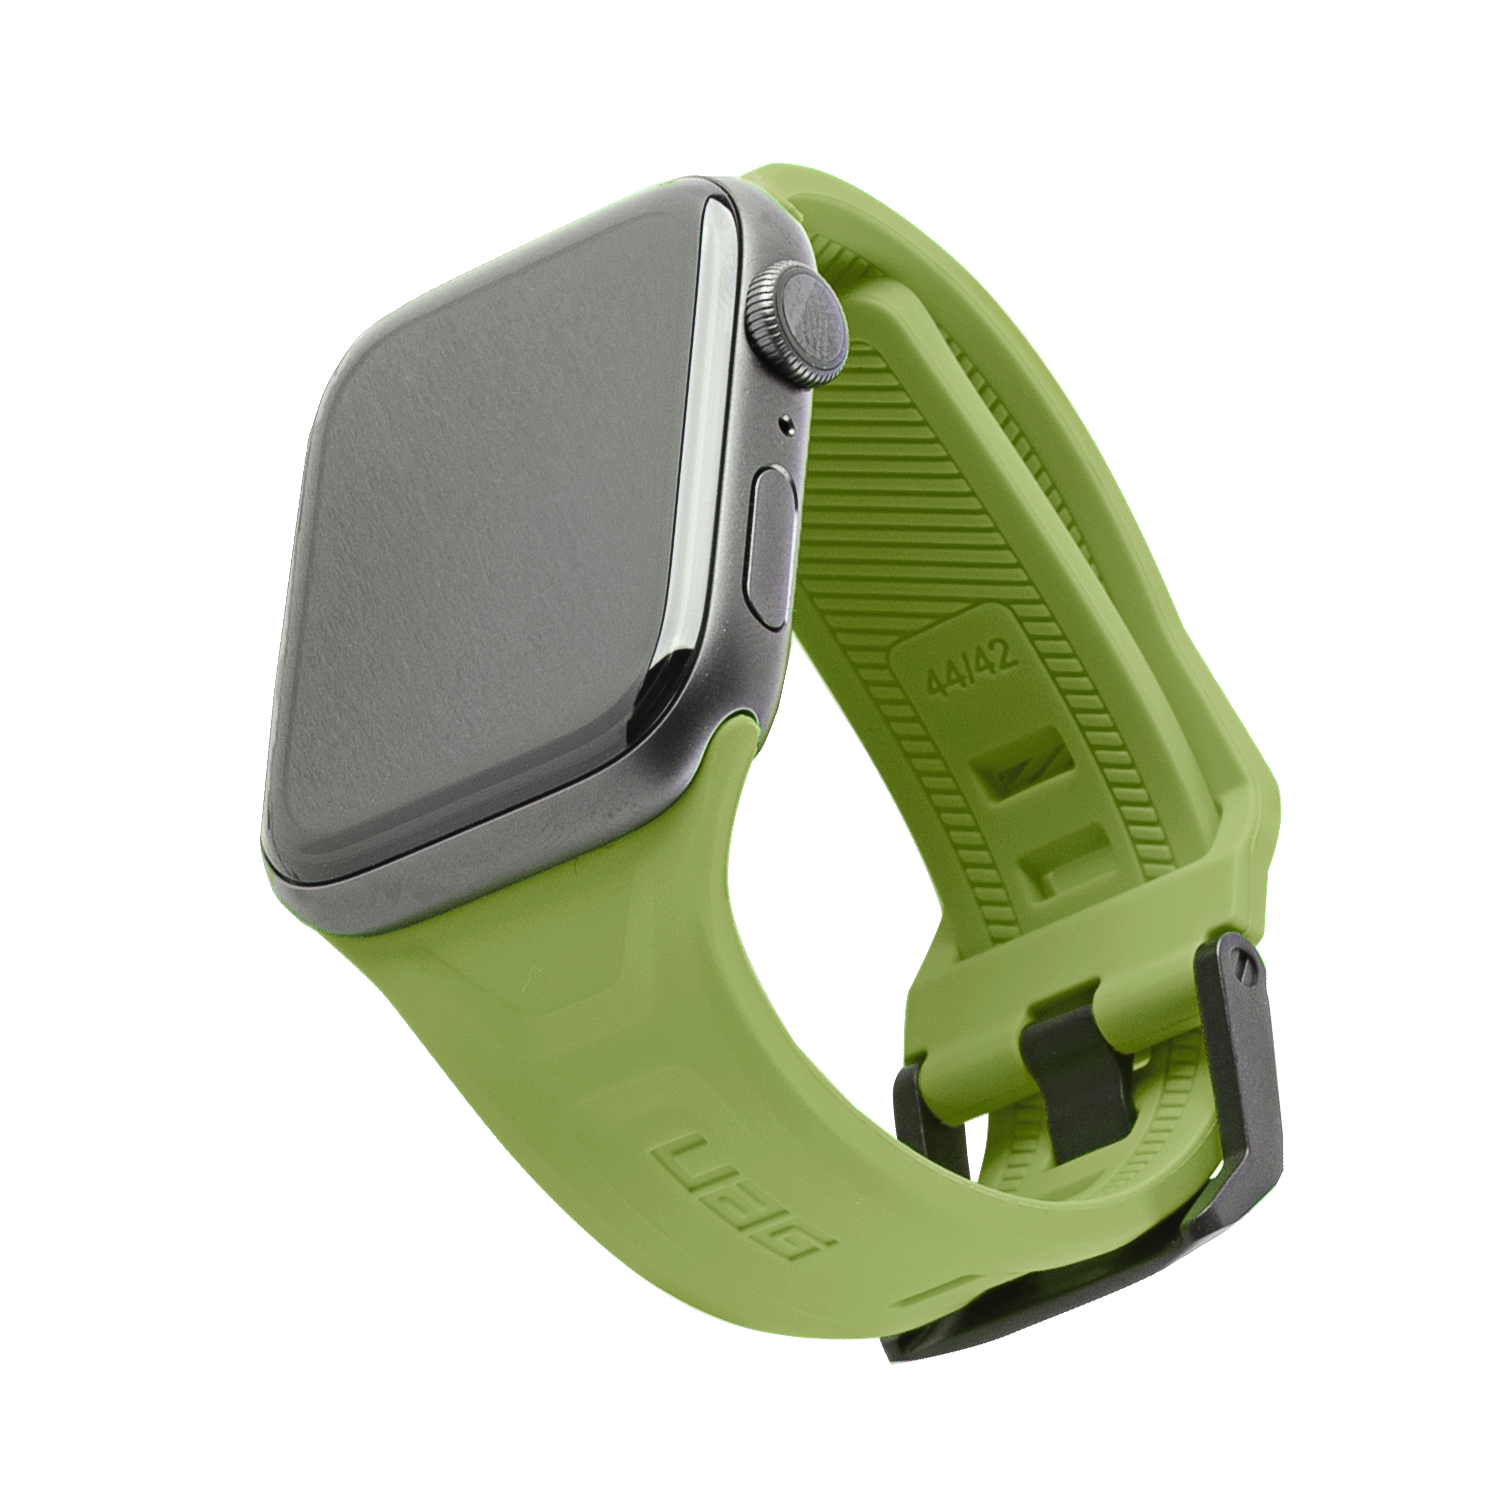 UAG Scout Silicone Watch Strap for Apple Watch 42mm / 44mm - Olive Green